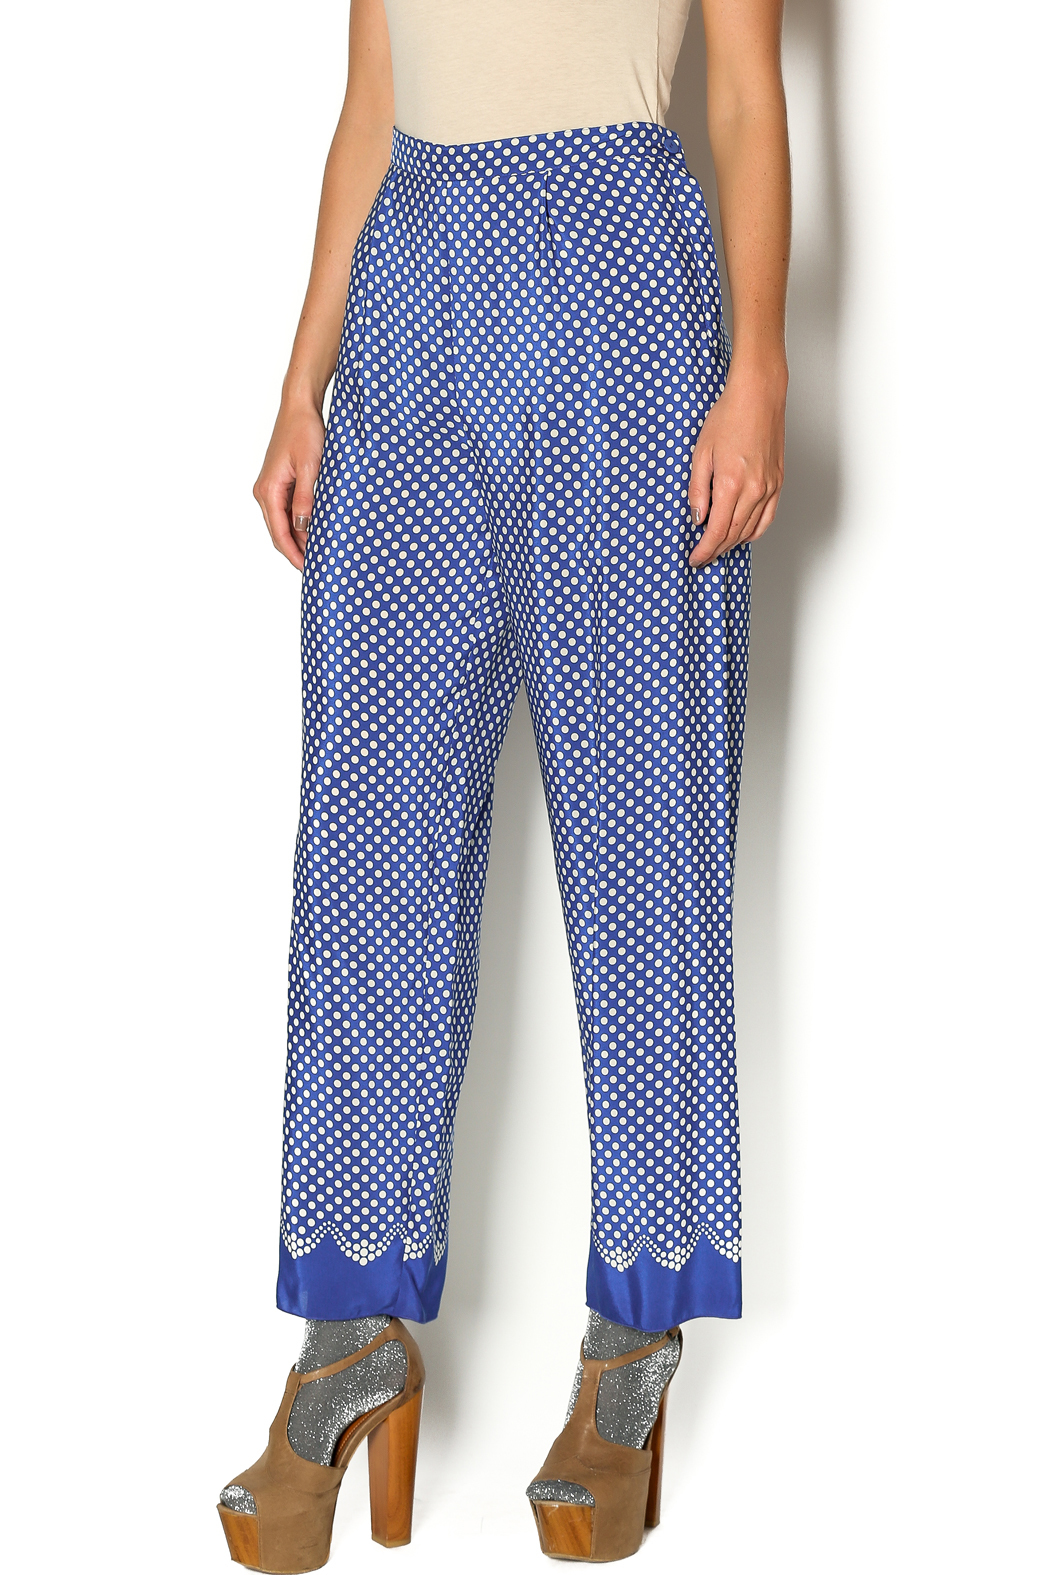 Anna Sui Aurora Polka Dot Pant - Front Cropped Image